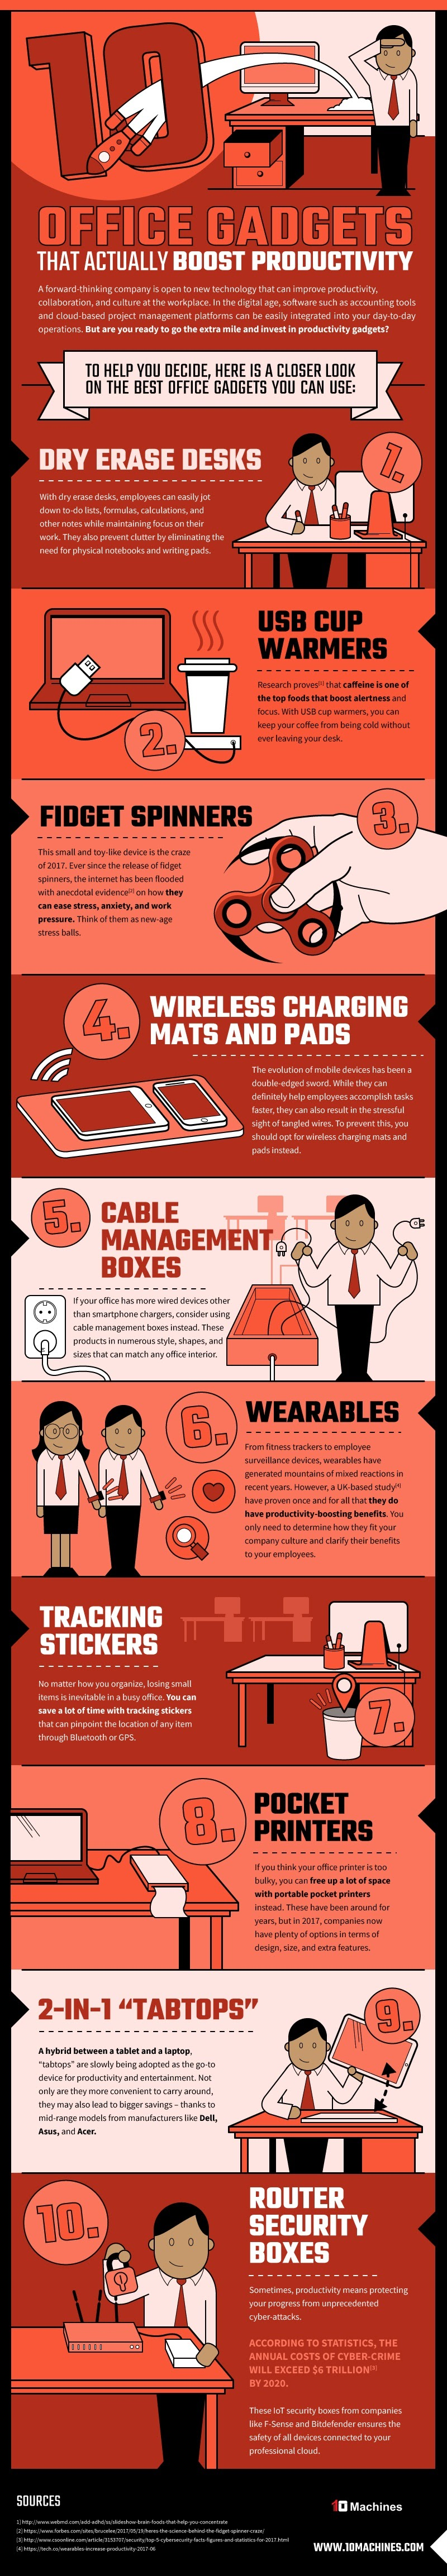 10 Desk Hacks to Improve Your Thinking and Alertness At Work [infographic]